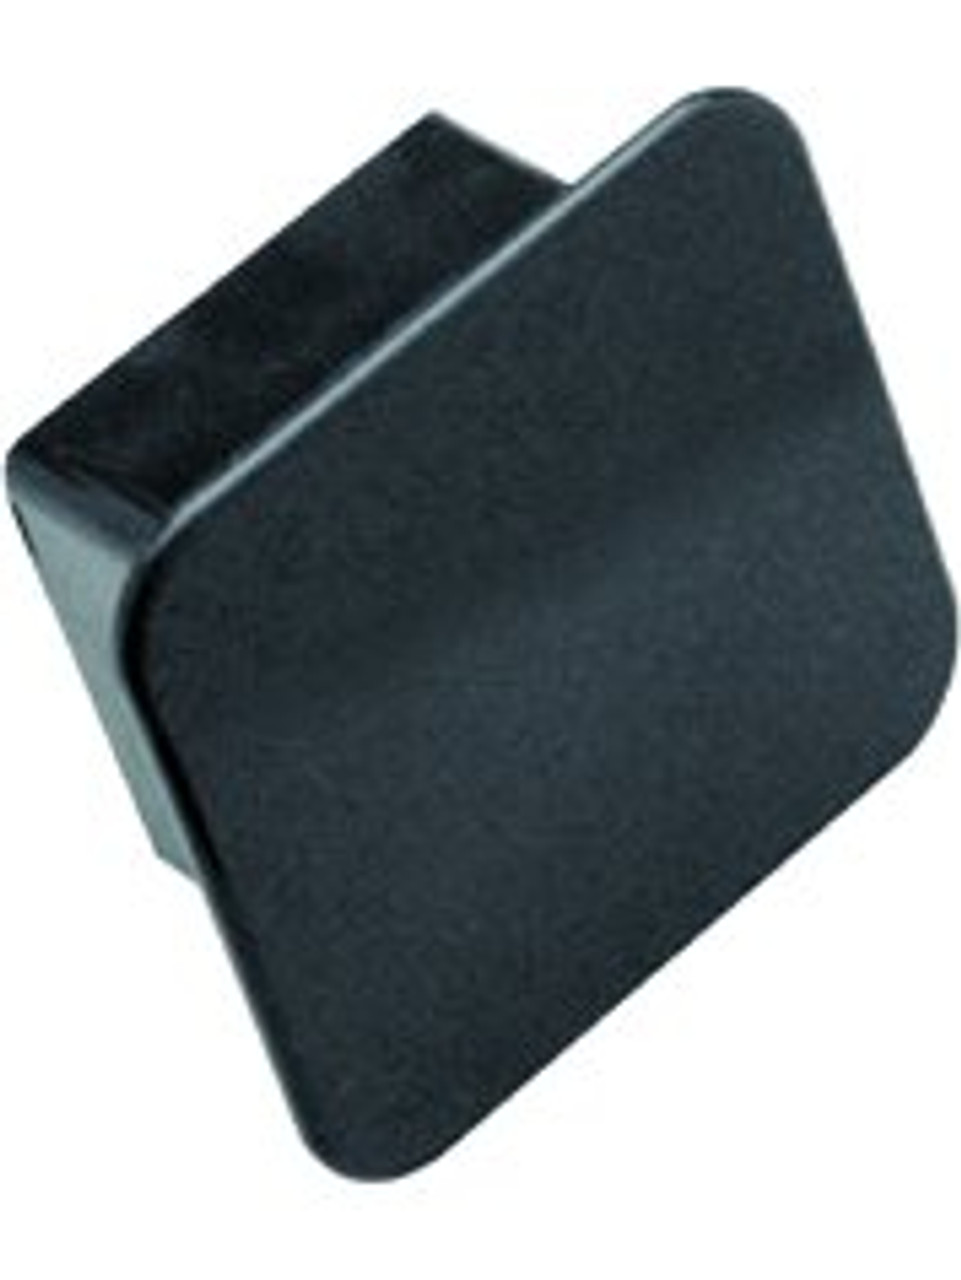 1202 --- Black Plastic Hitch Tube Cover